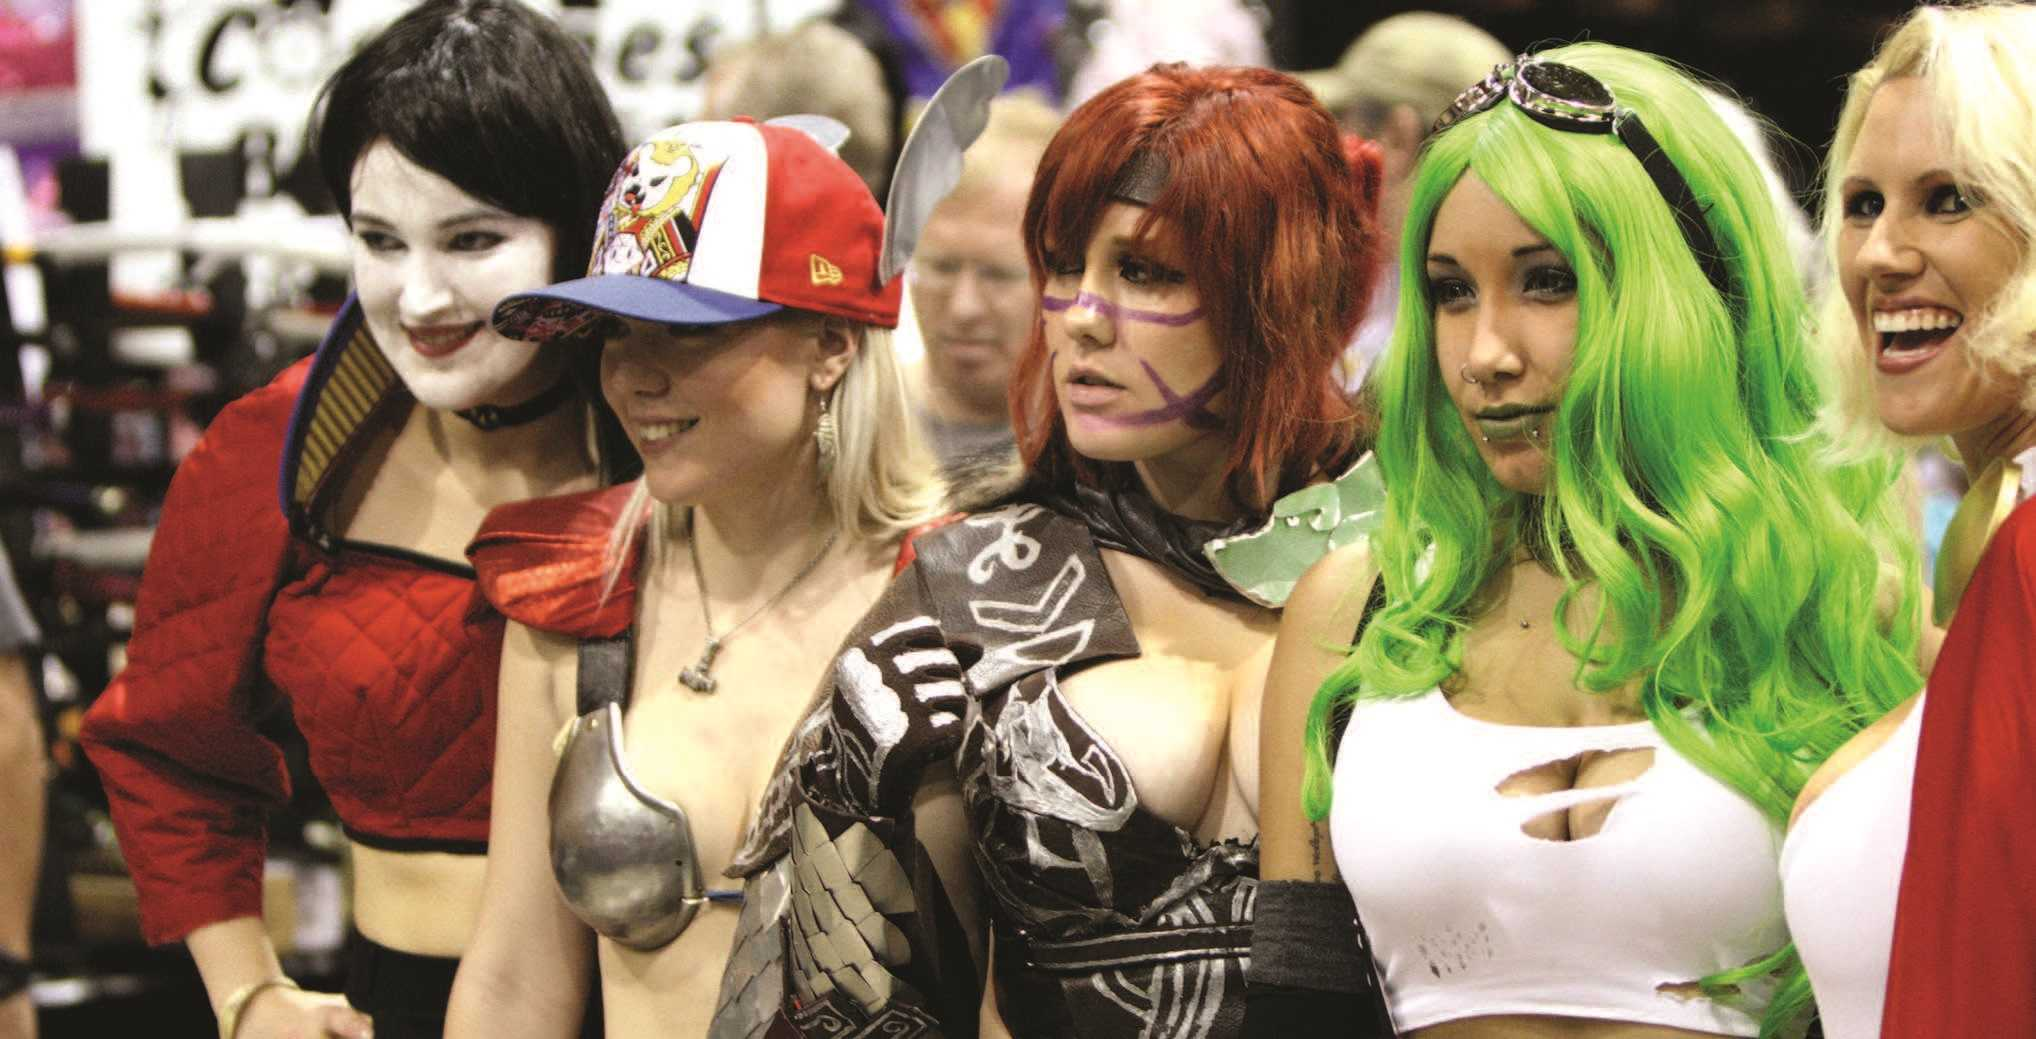 Cosplayers at the Amazing Arizona Comic Con at the Phoenix Convention Center in Phoenix.